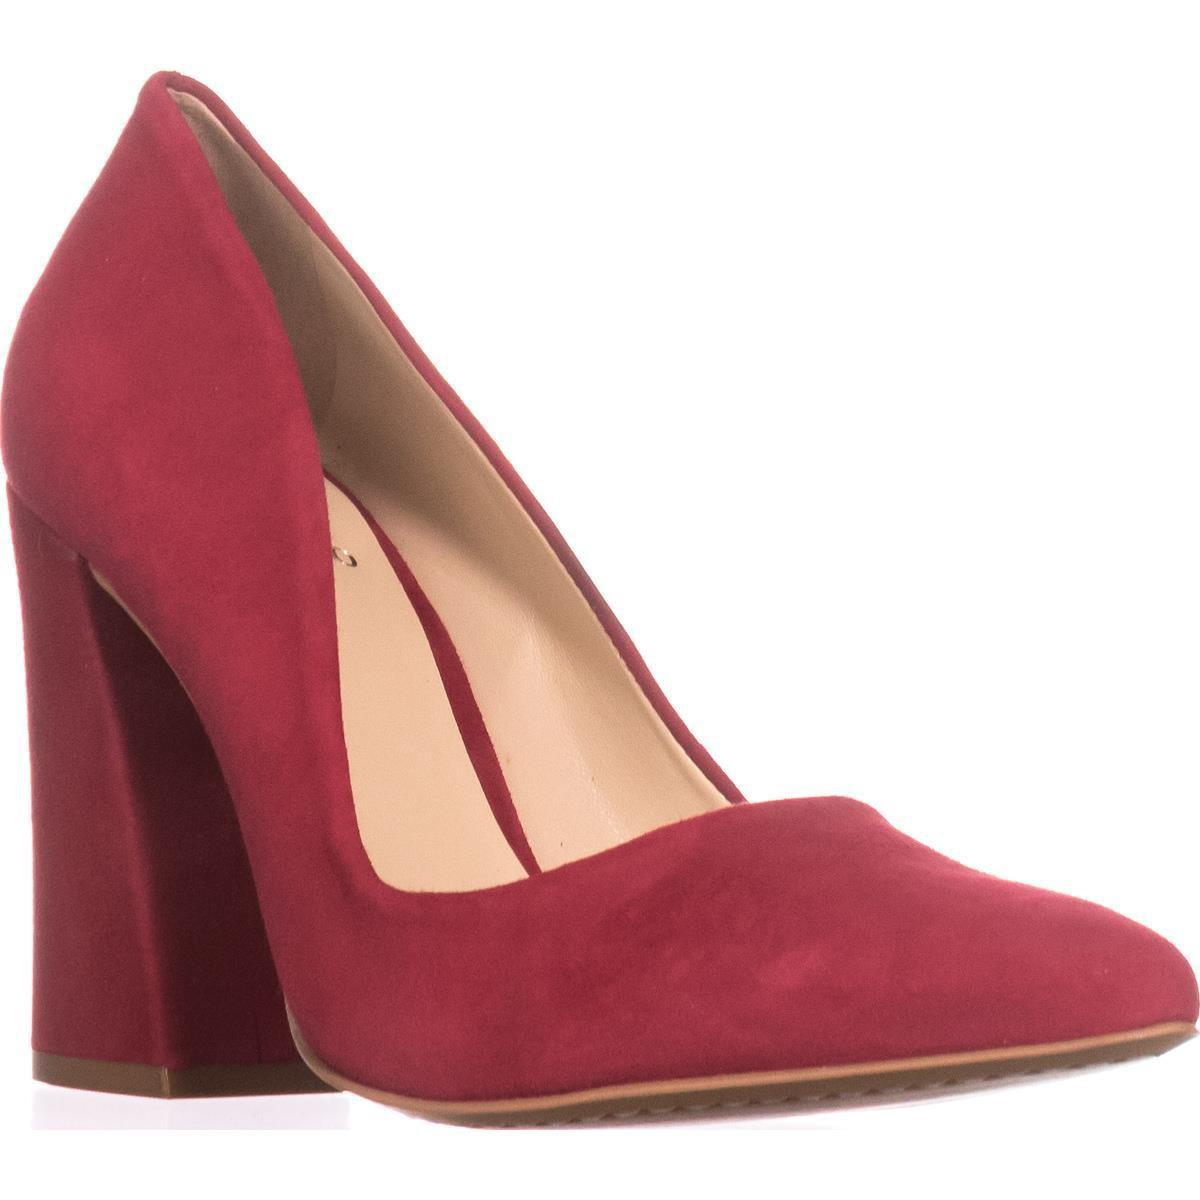 6ee745d6d Lyst - Vince Camuto Talise Dress Pump in Red